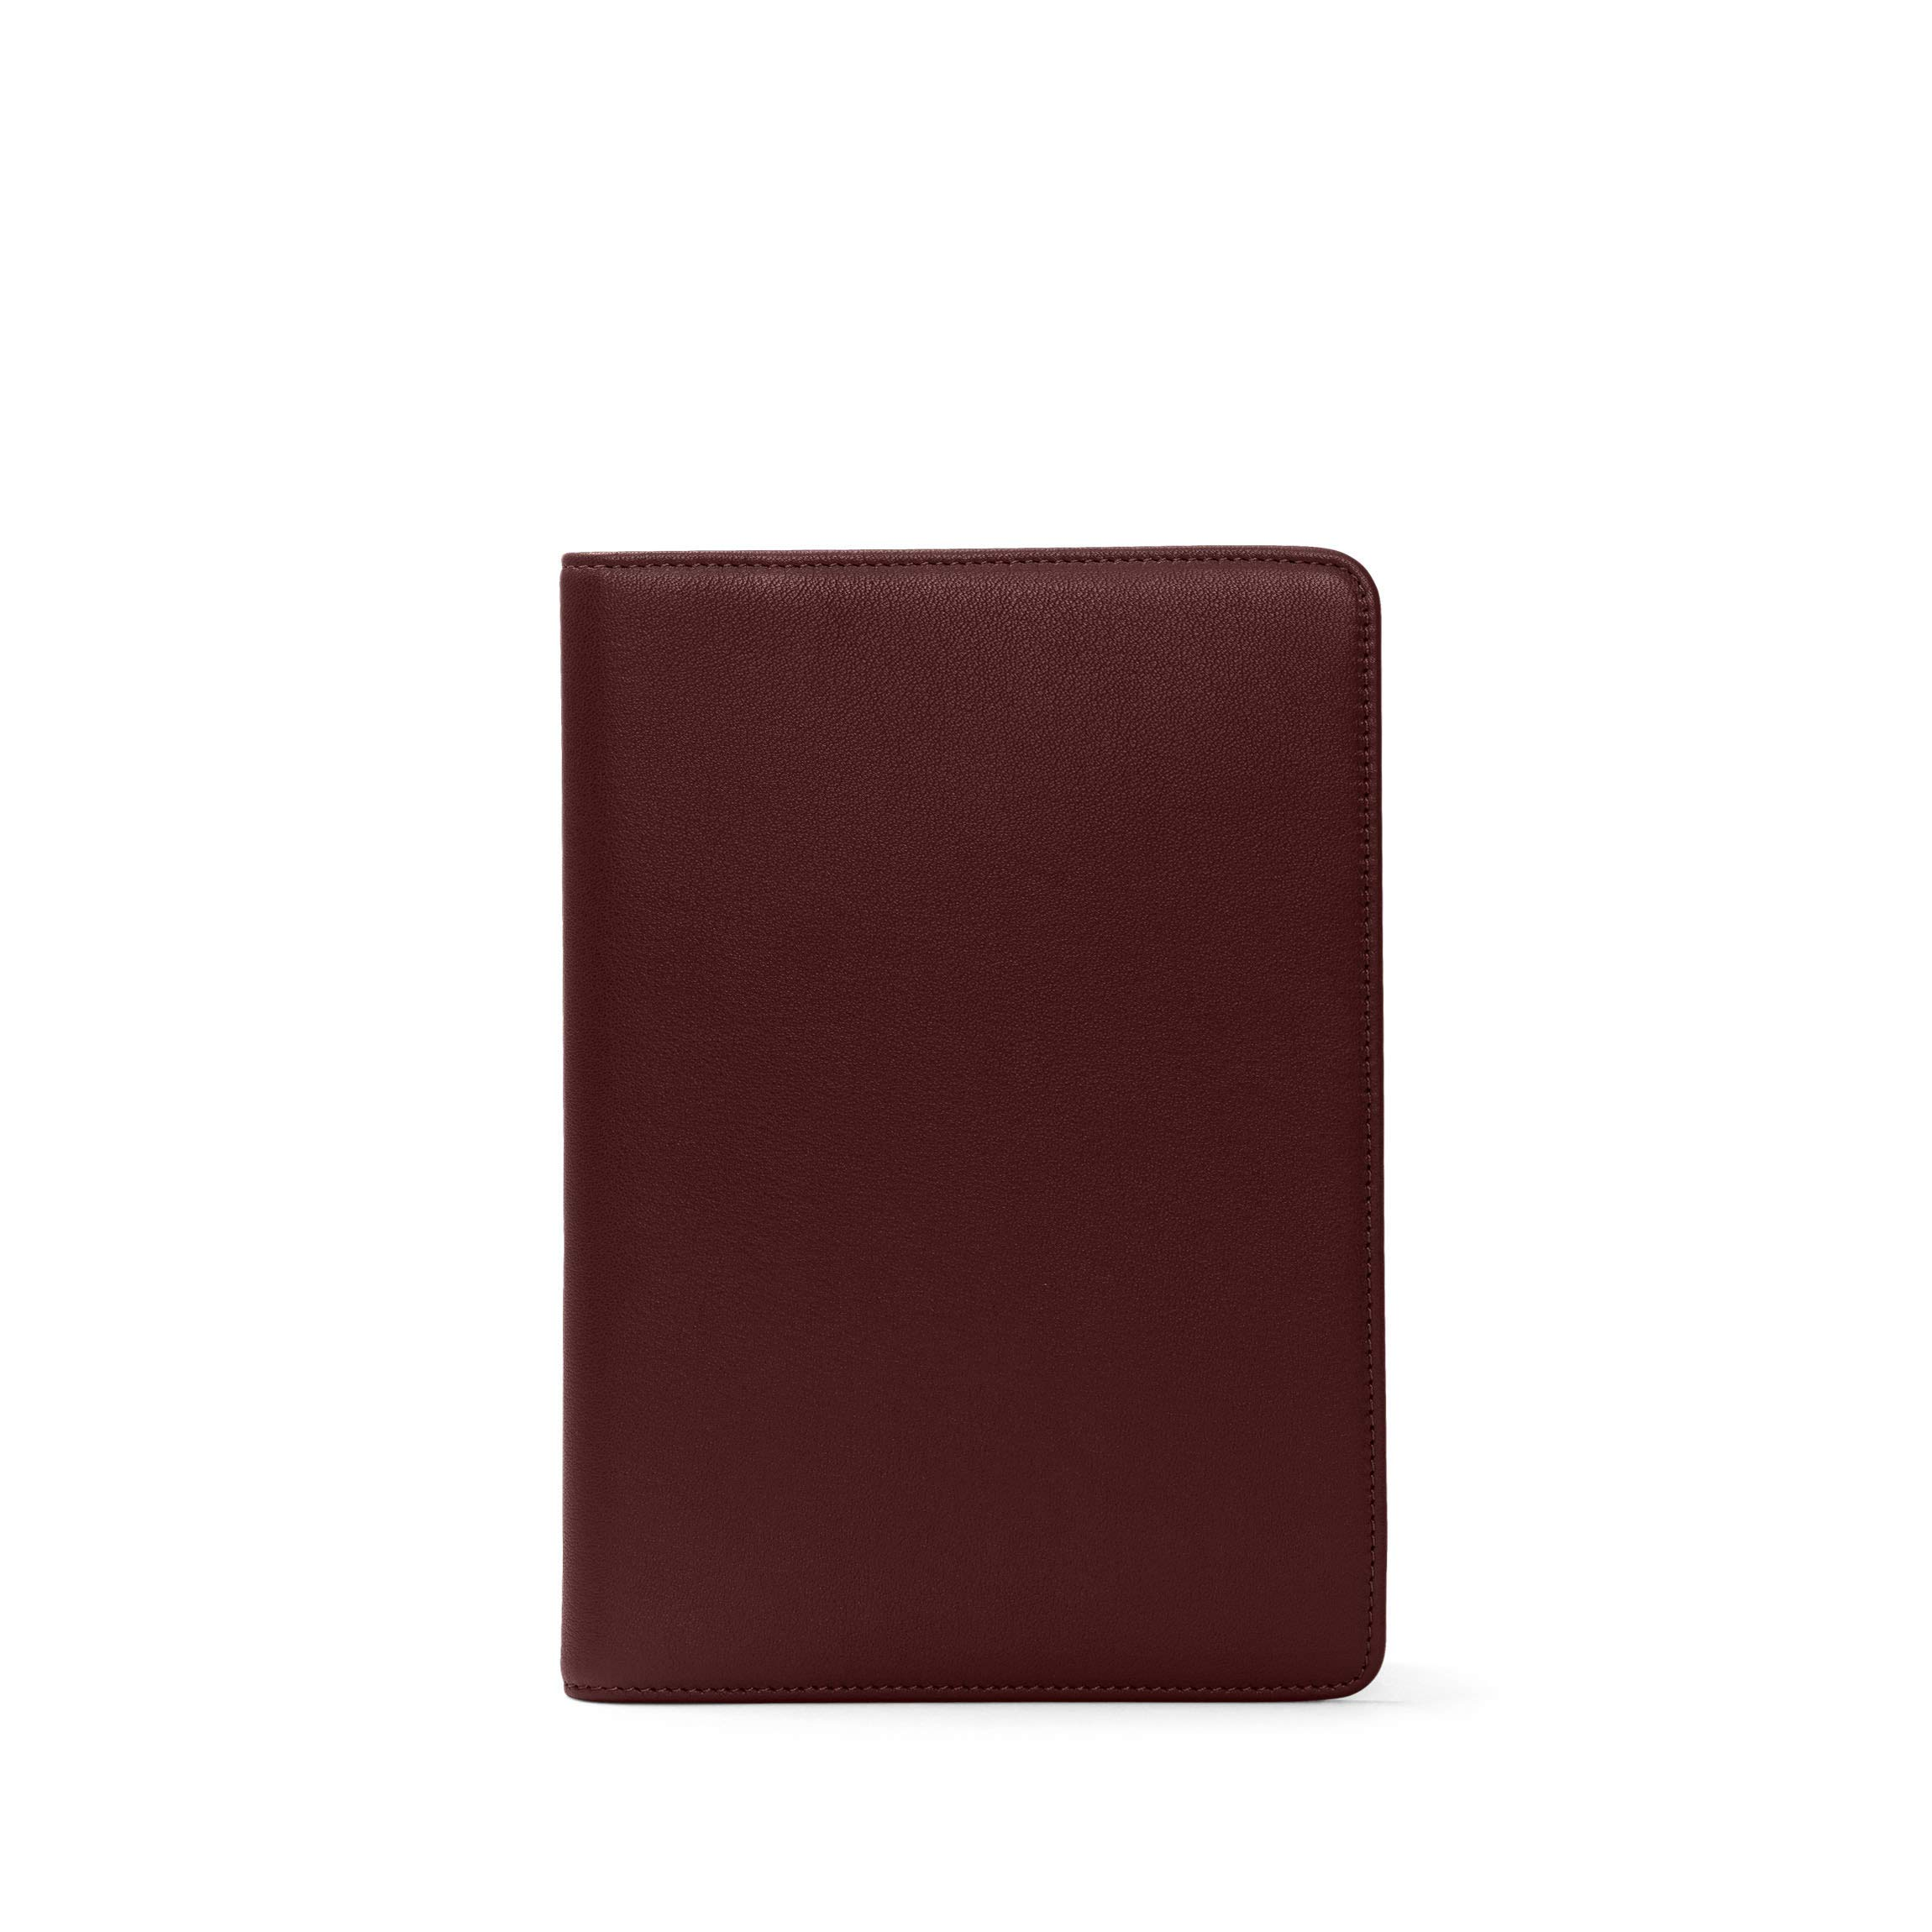 Medium Journal - Full Grain Leather Leather - Bordeaux (Red)